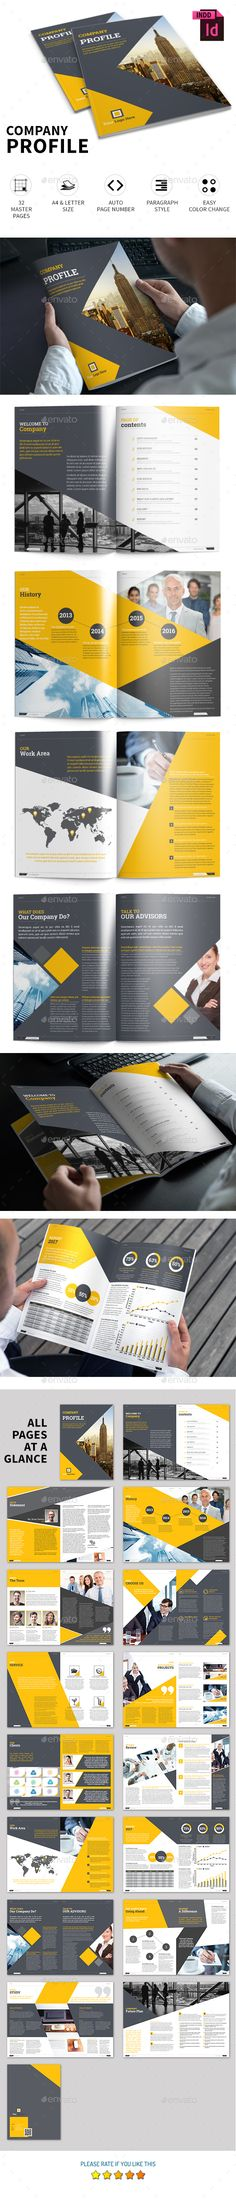 Company Profile Brochure Template InDesign INDD - 32 Pages, A4 & US Letter Size